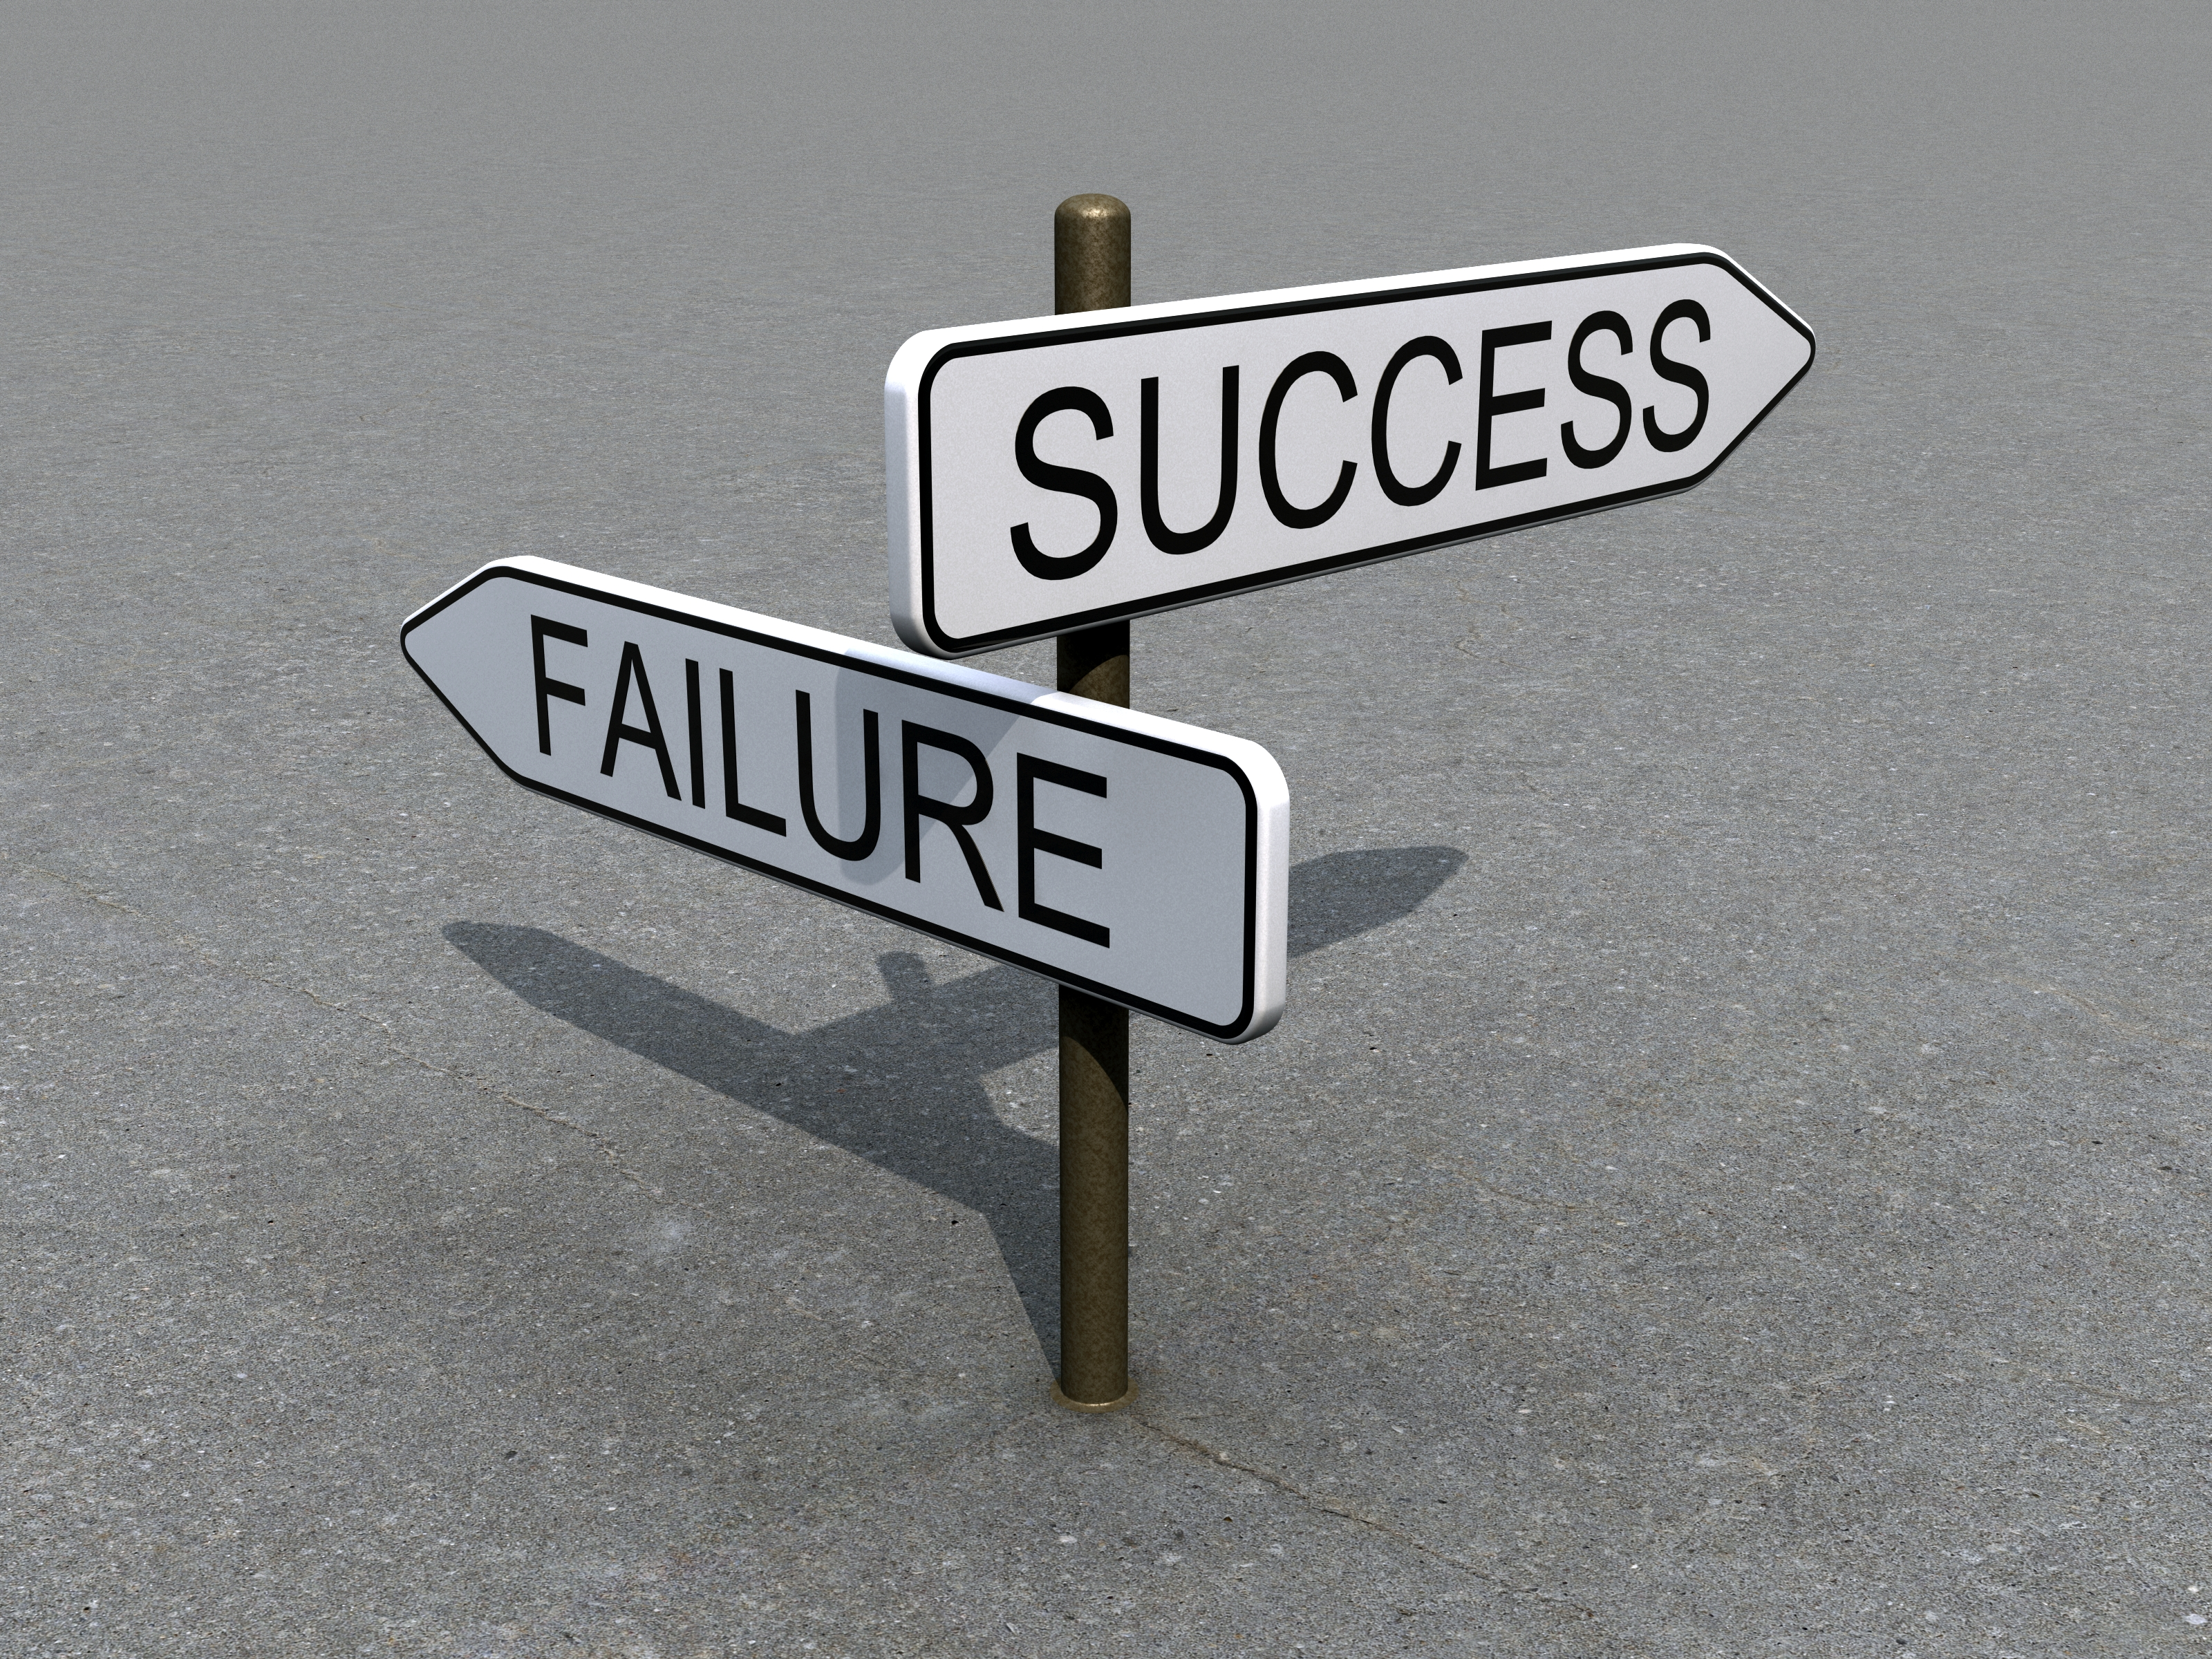 Success - Failure regret signs